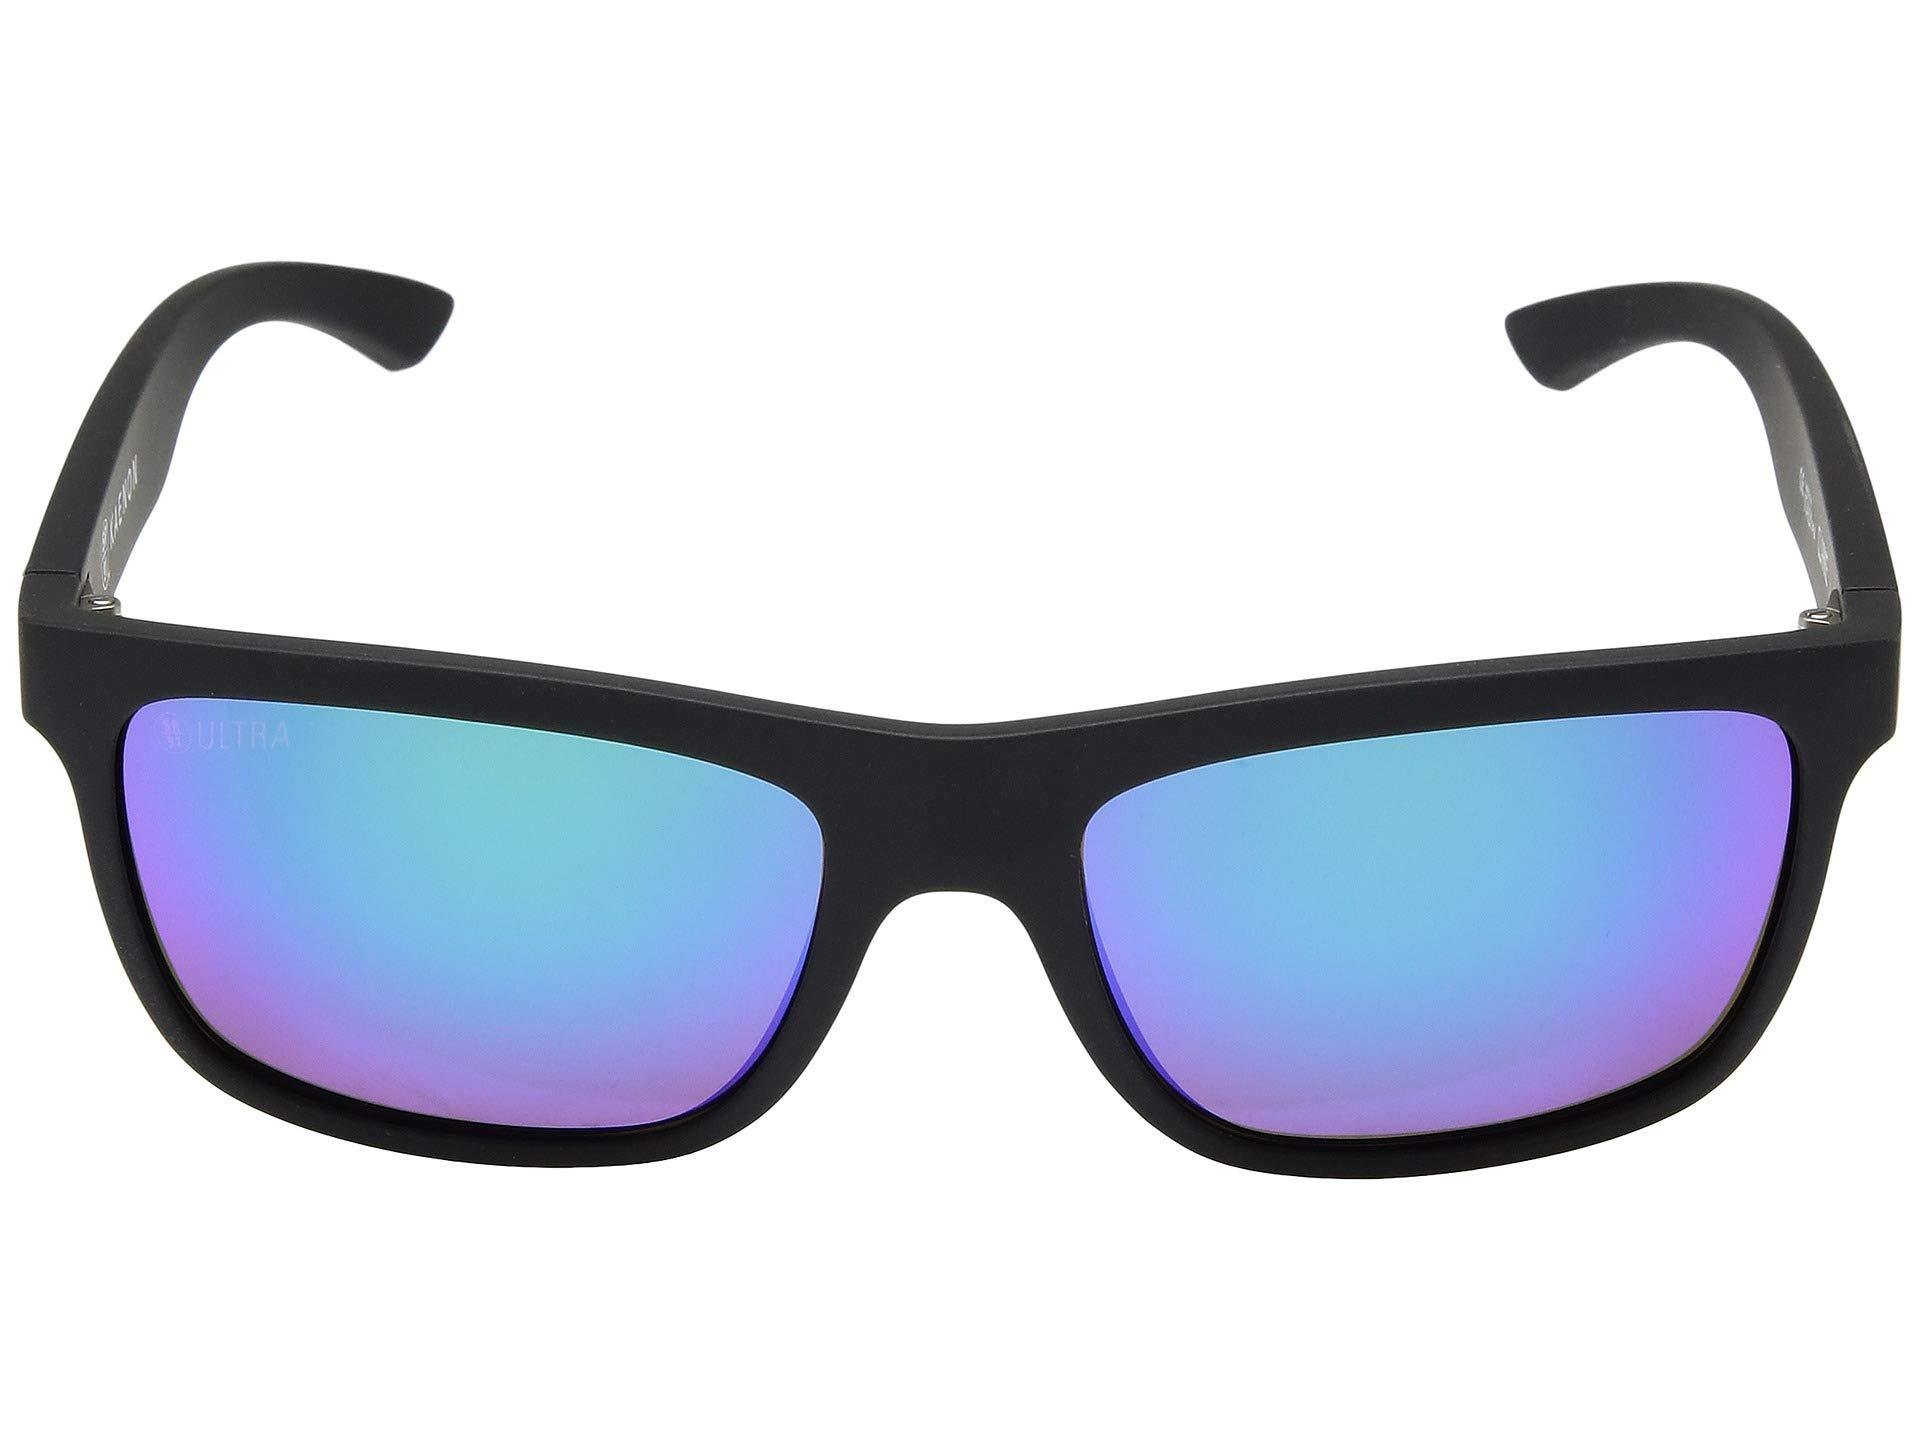 9b6b79cda6 Kaenon - Multicolor Clarke (matte Black Glacier ultra Black Mirror) Sport  Sunglasses for. View fullscreen